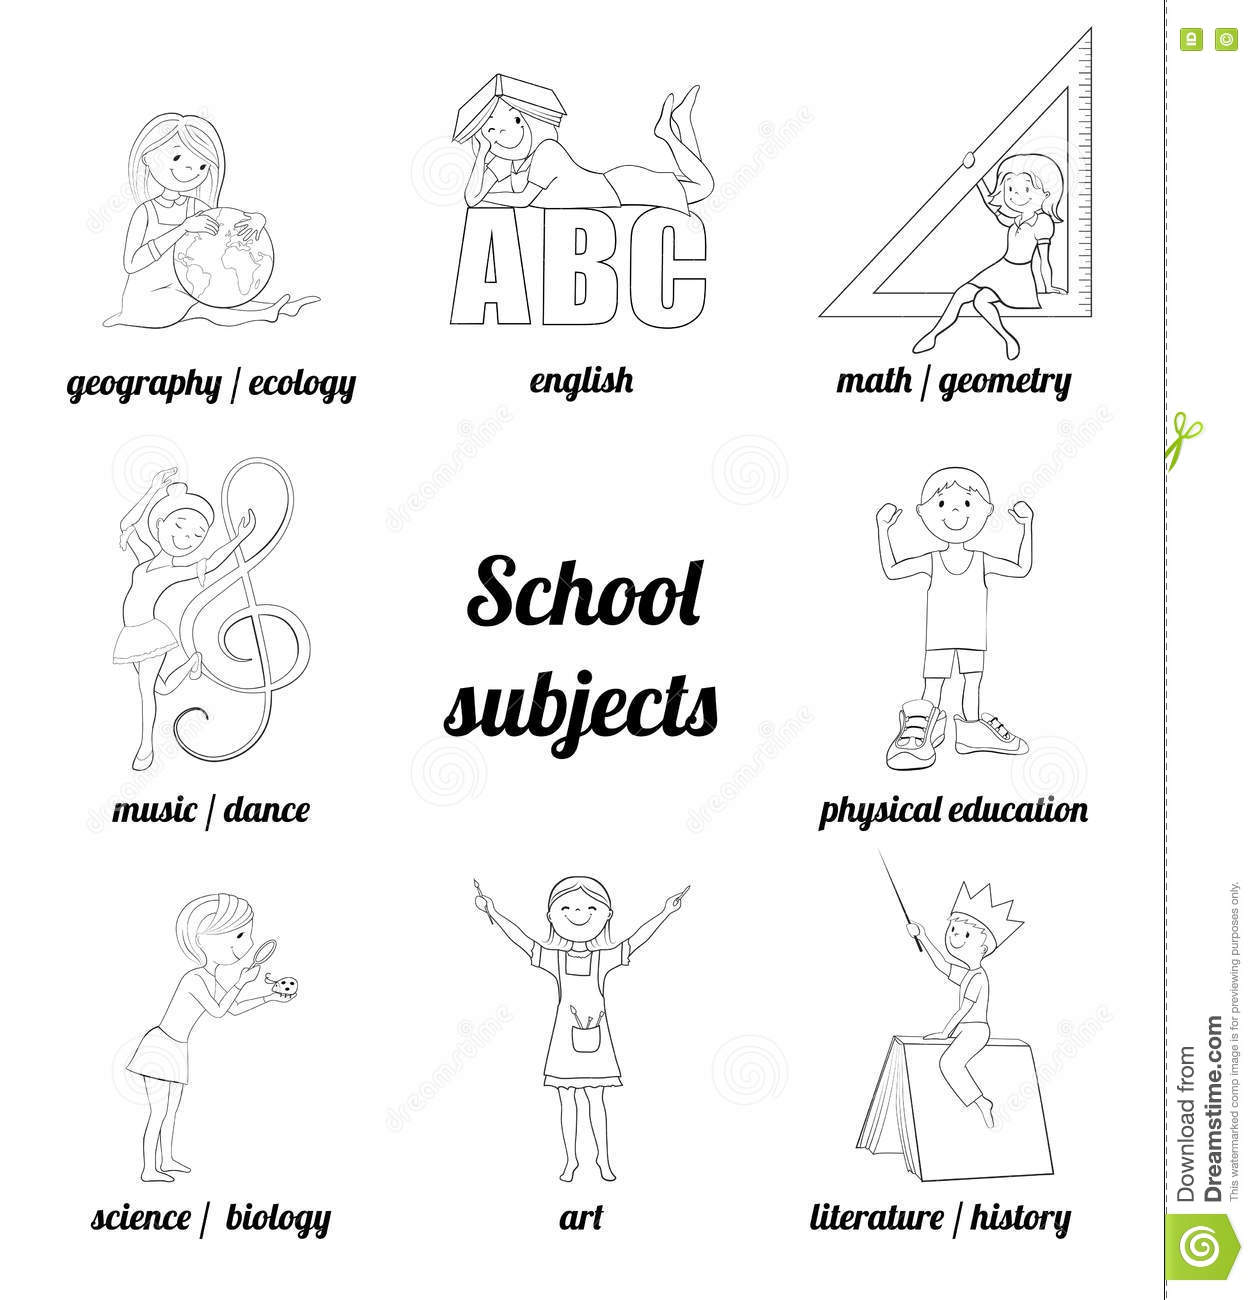 School Subjects Vector Coloring Page Stock Vector - Illustration of ...